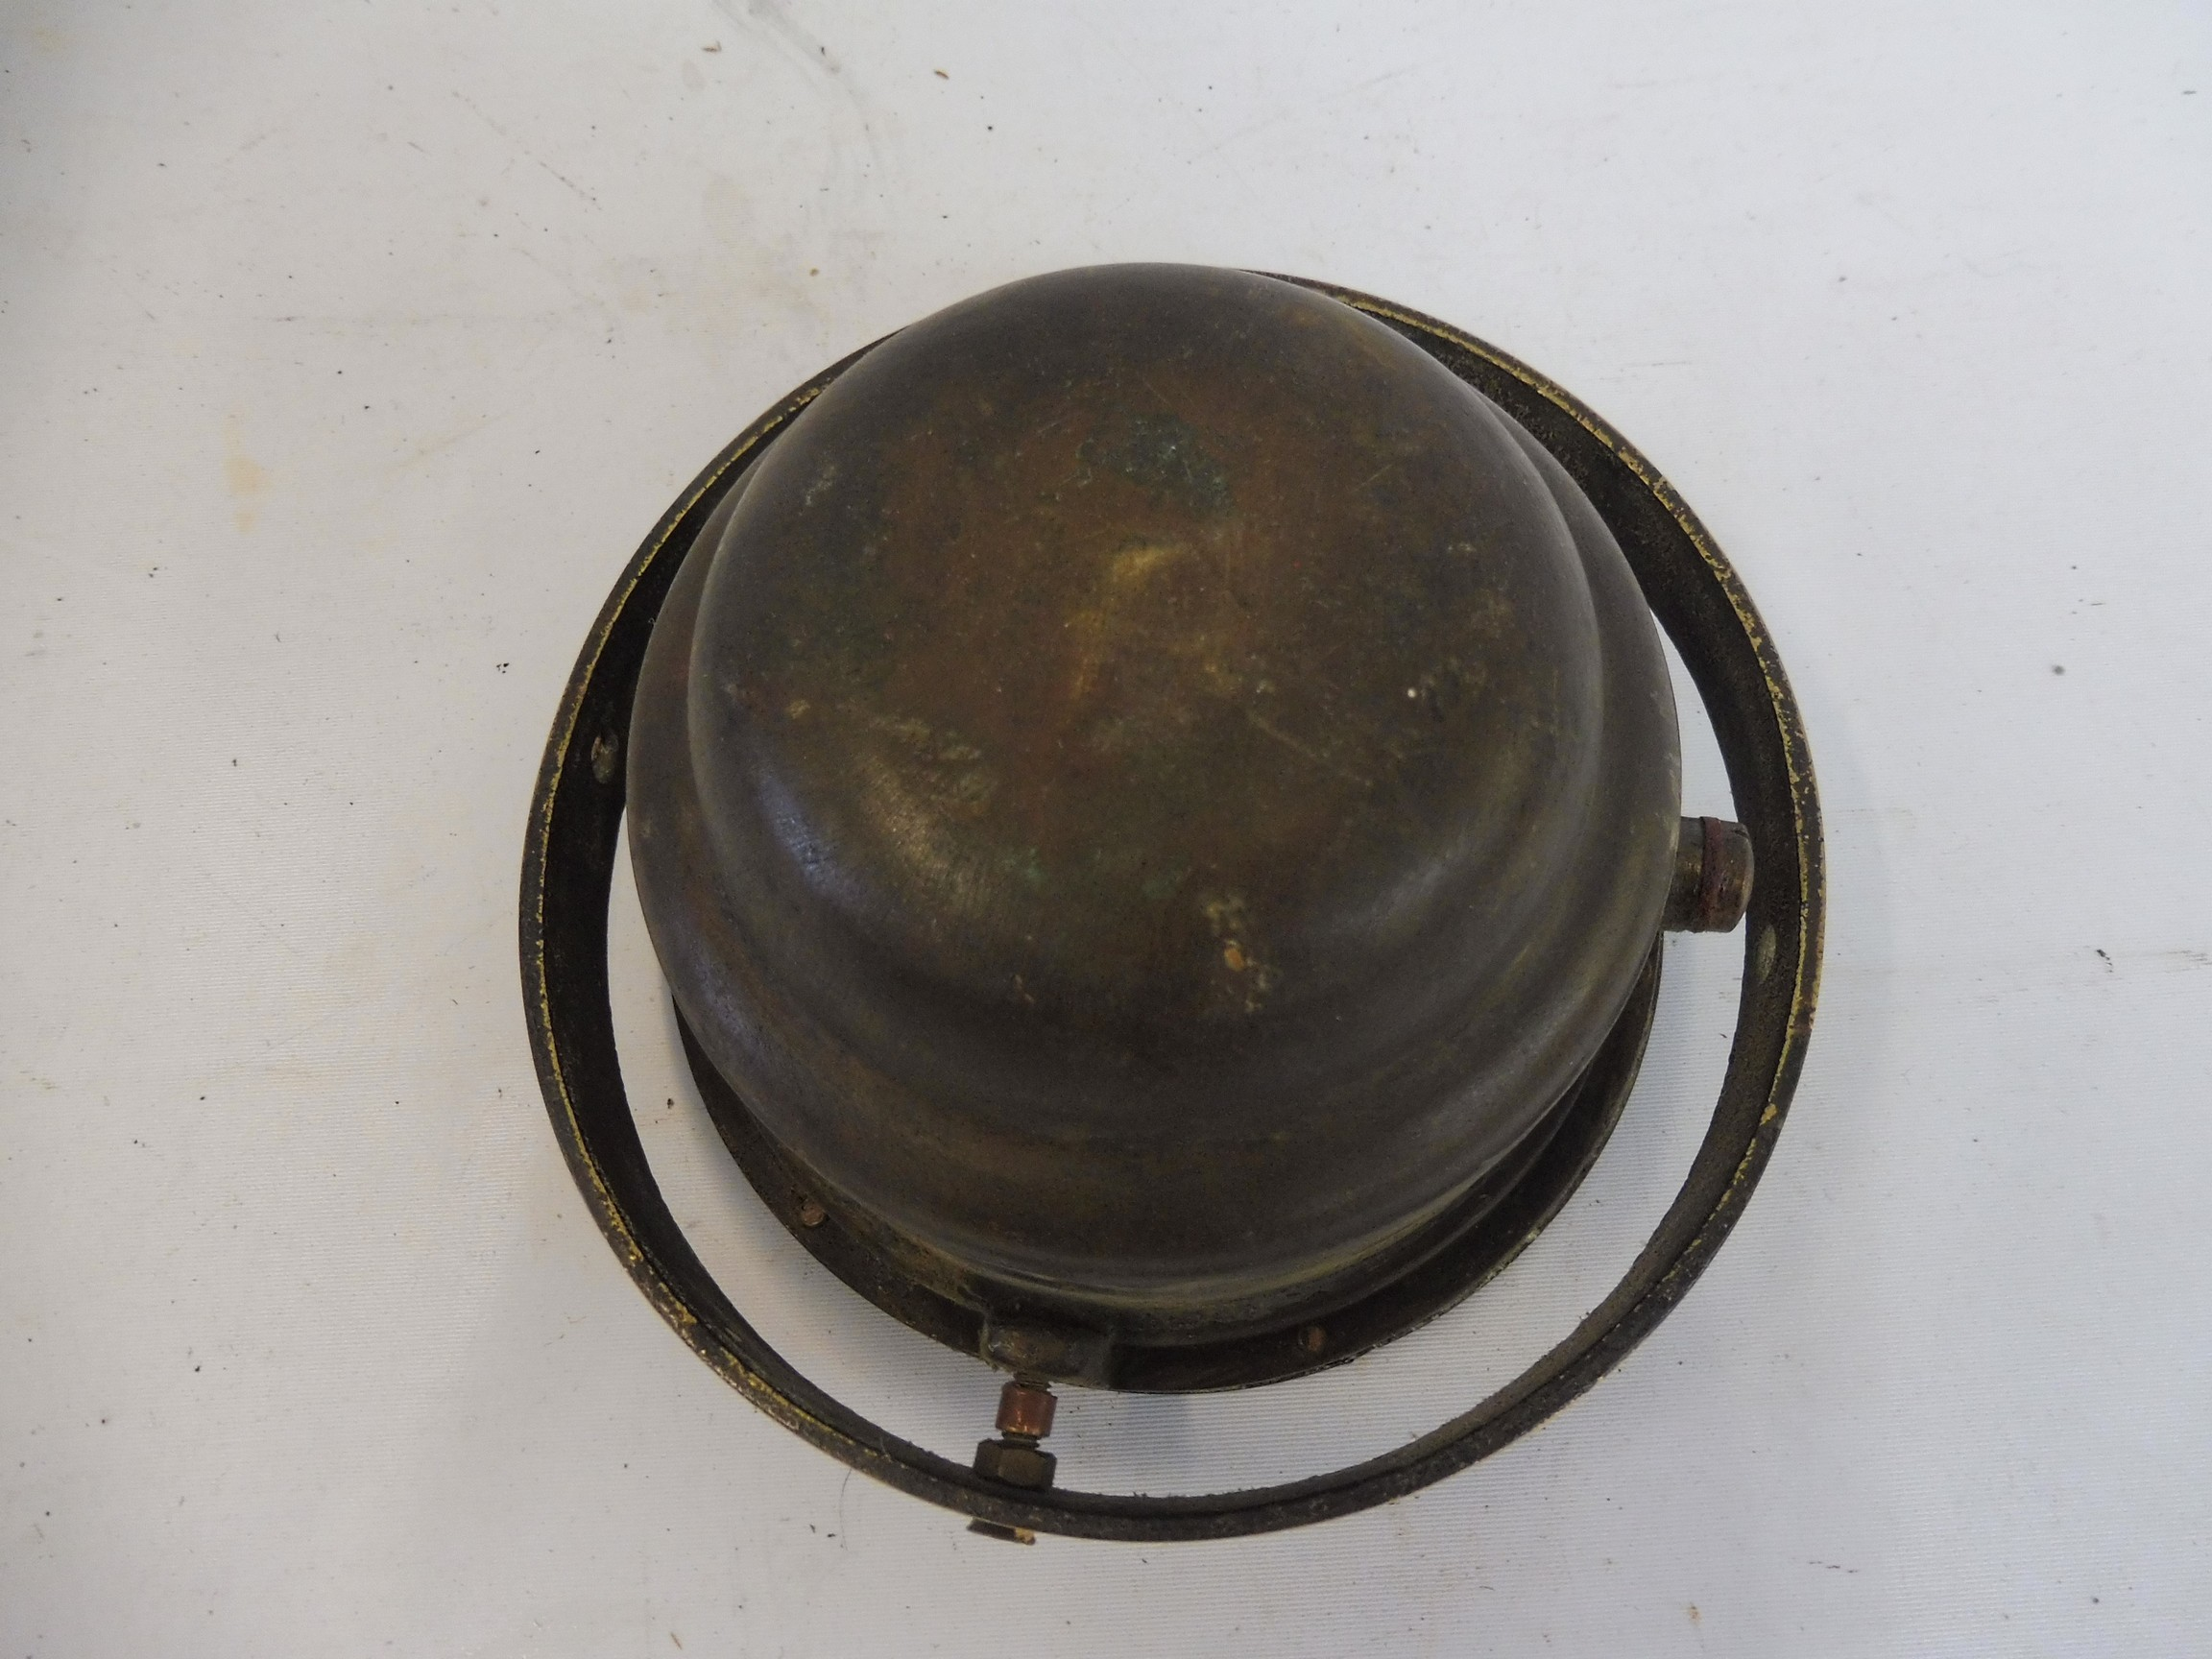 A brass binnacle compass by Lily and Reynolds. - Image 2 of 2